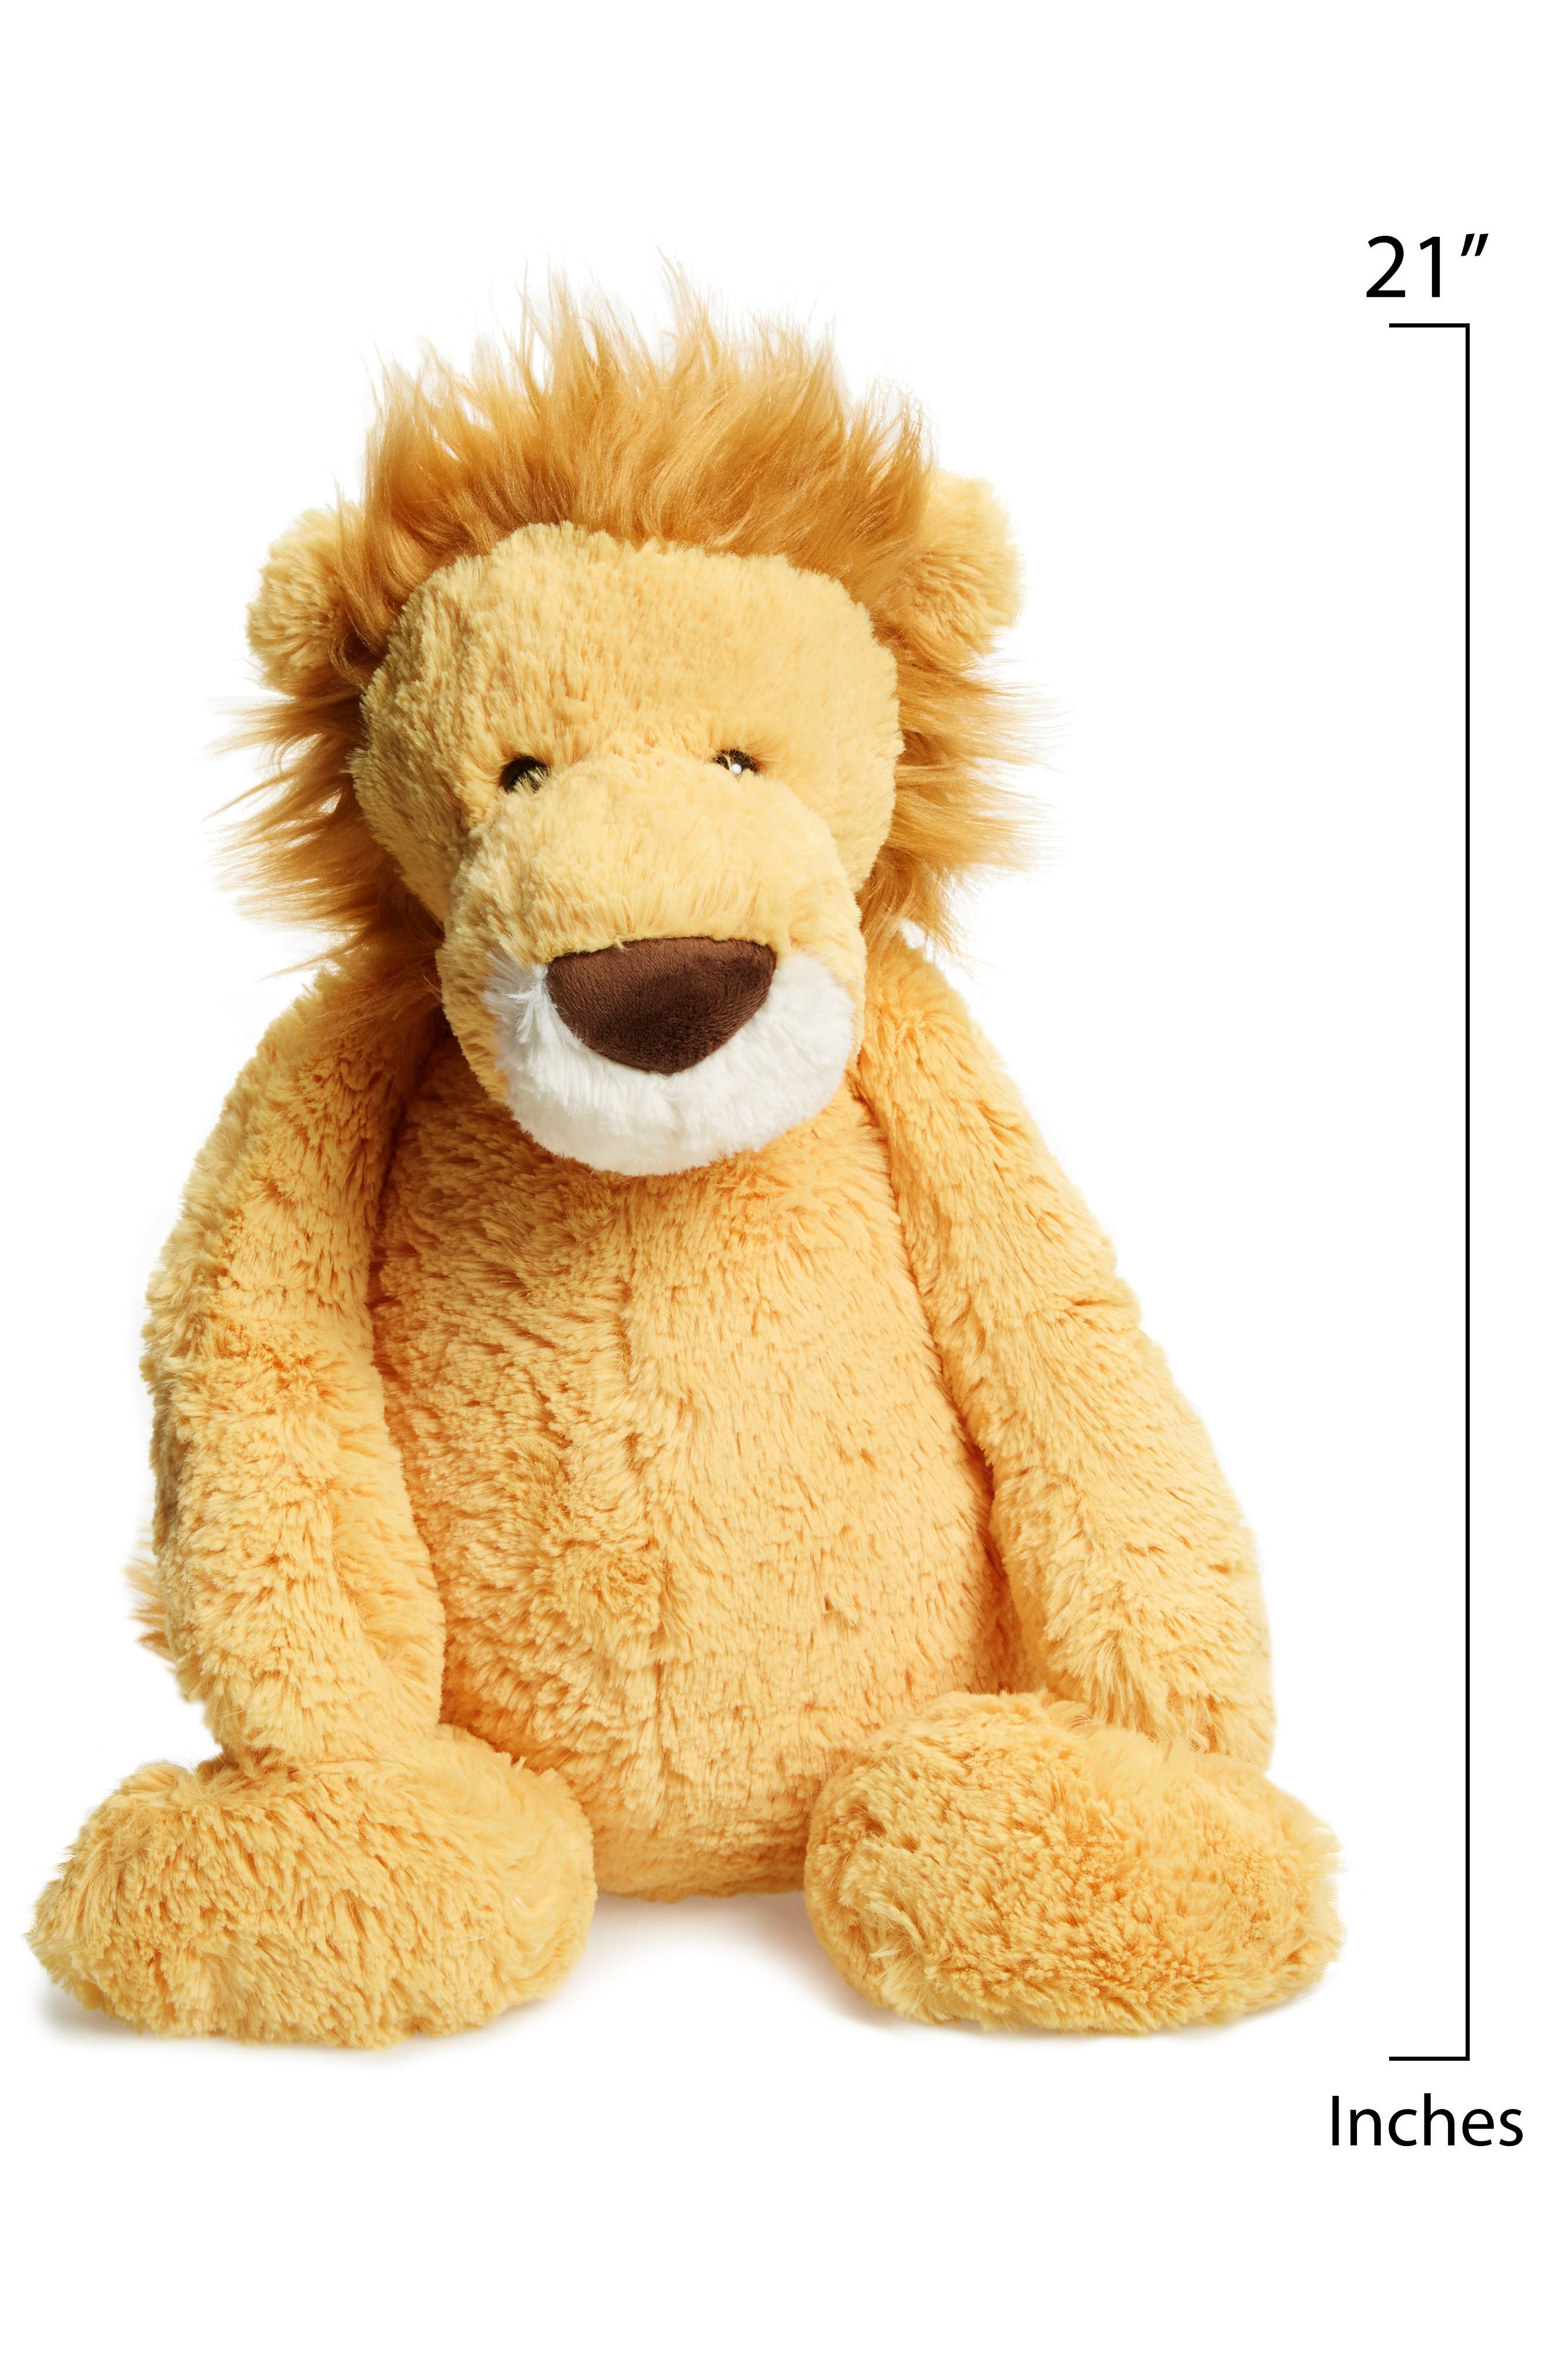 Huge Bashful Lion Stuffed Animal,                             Alternate thumbnail 2, color,                             710